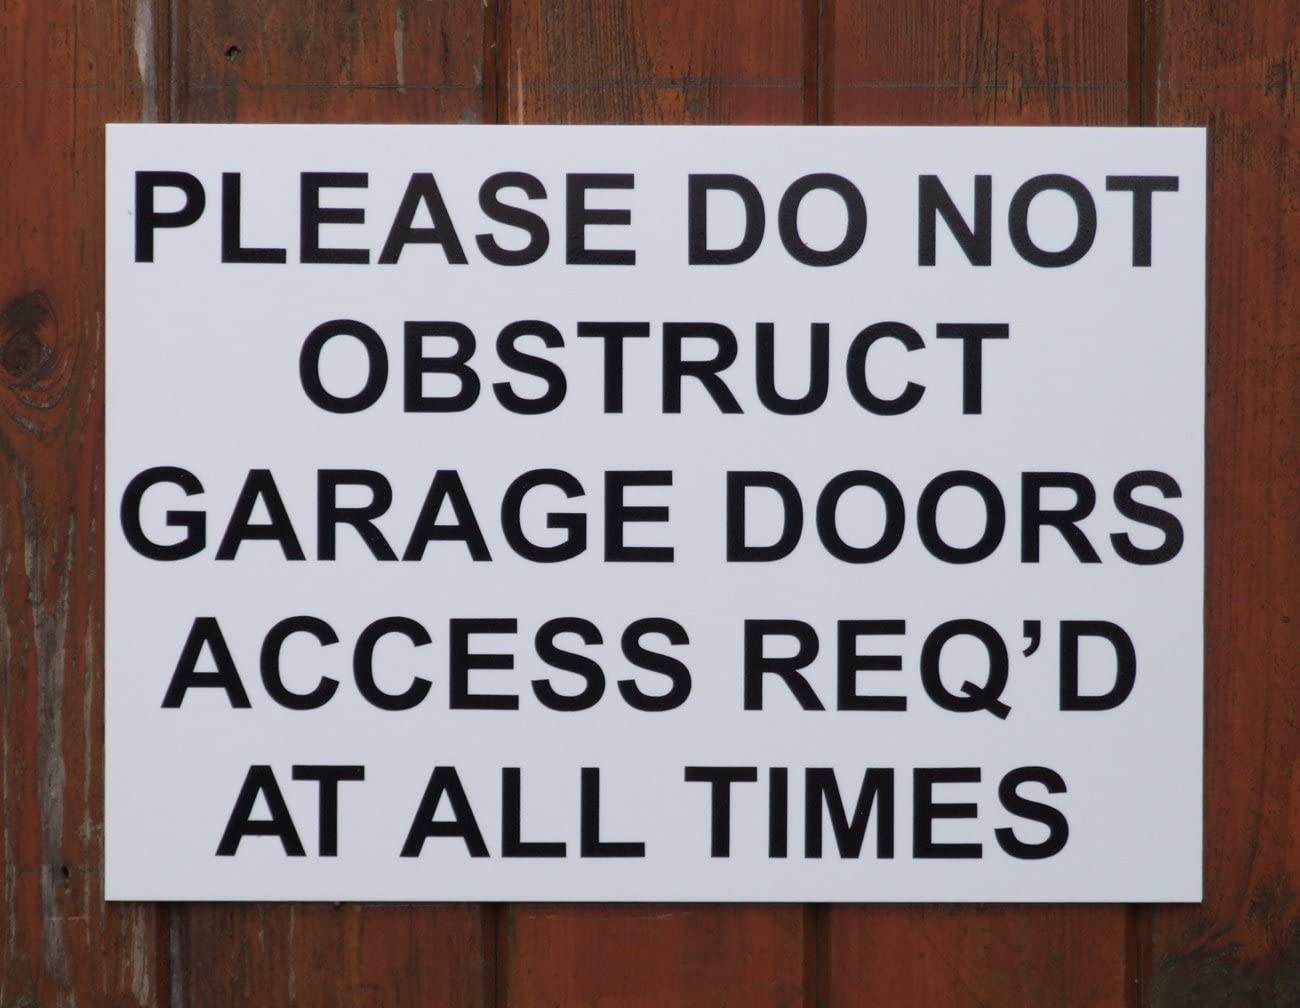 Blue Clearview Signs A4 PLEASE DO NOT OBSTRUCT GARAGE DOORS Size 297mmx 210mm x3mm